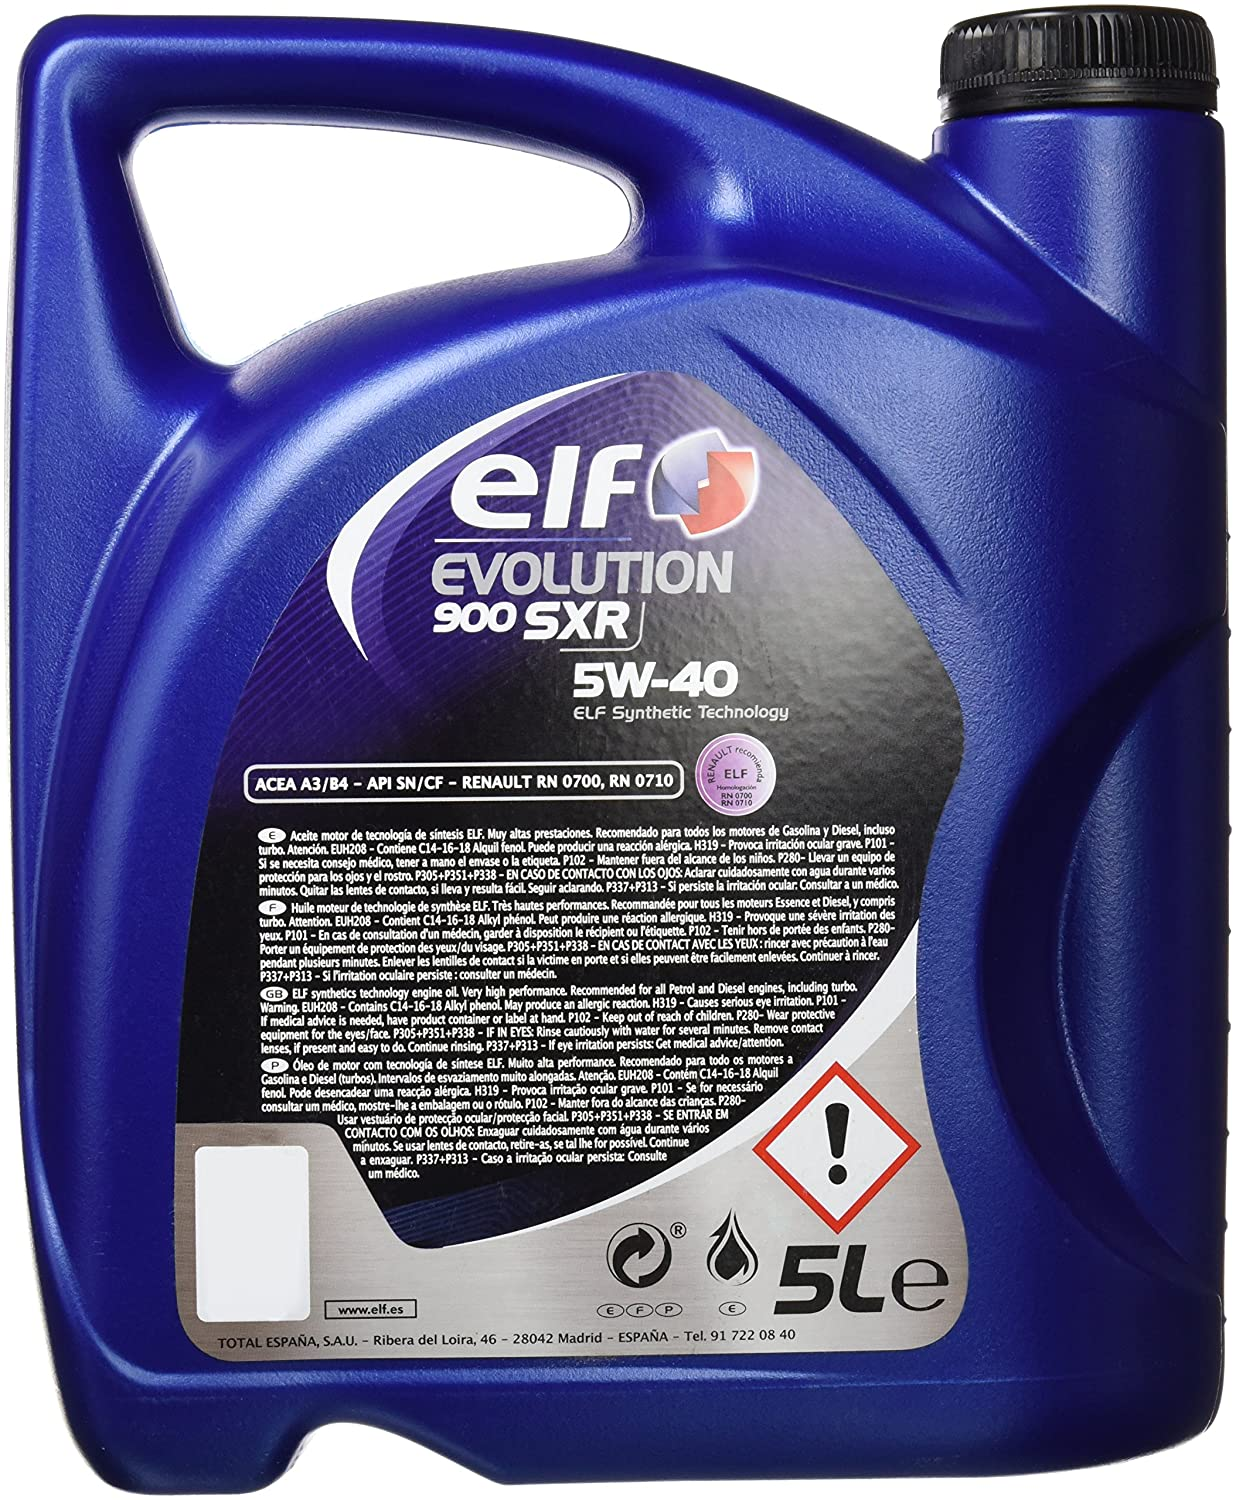 Elf ELEV5405 Evolution 900 SXR 5W40 5L, 5 litros: Amazon.es: Coche y moto